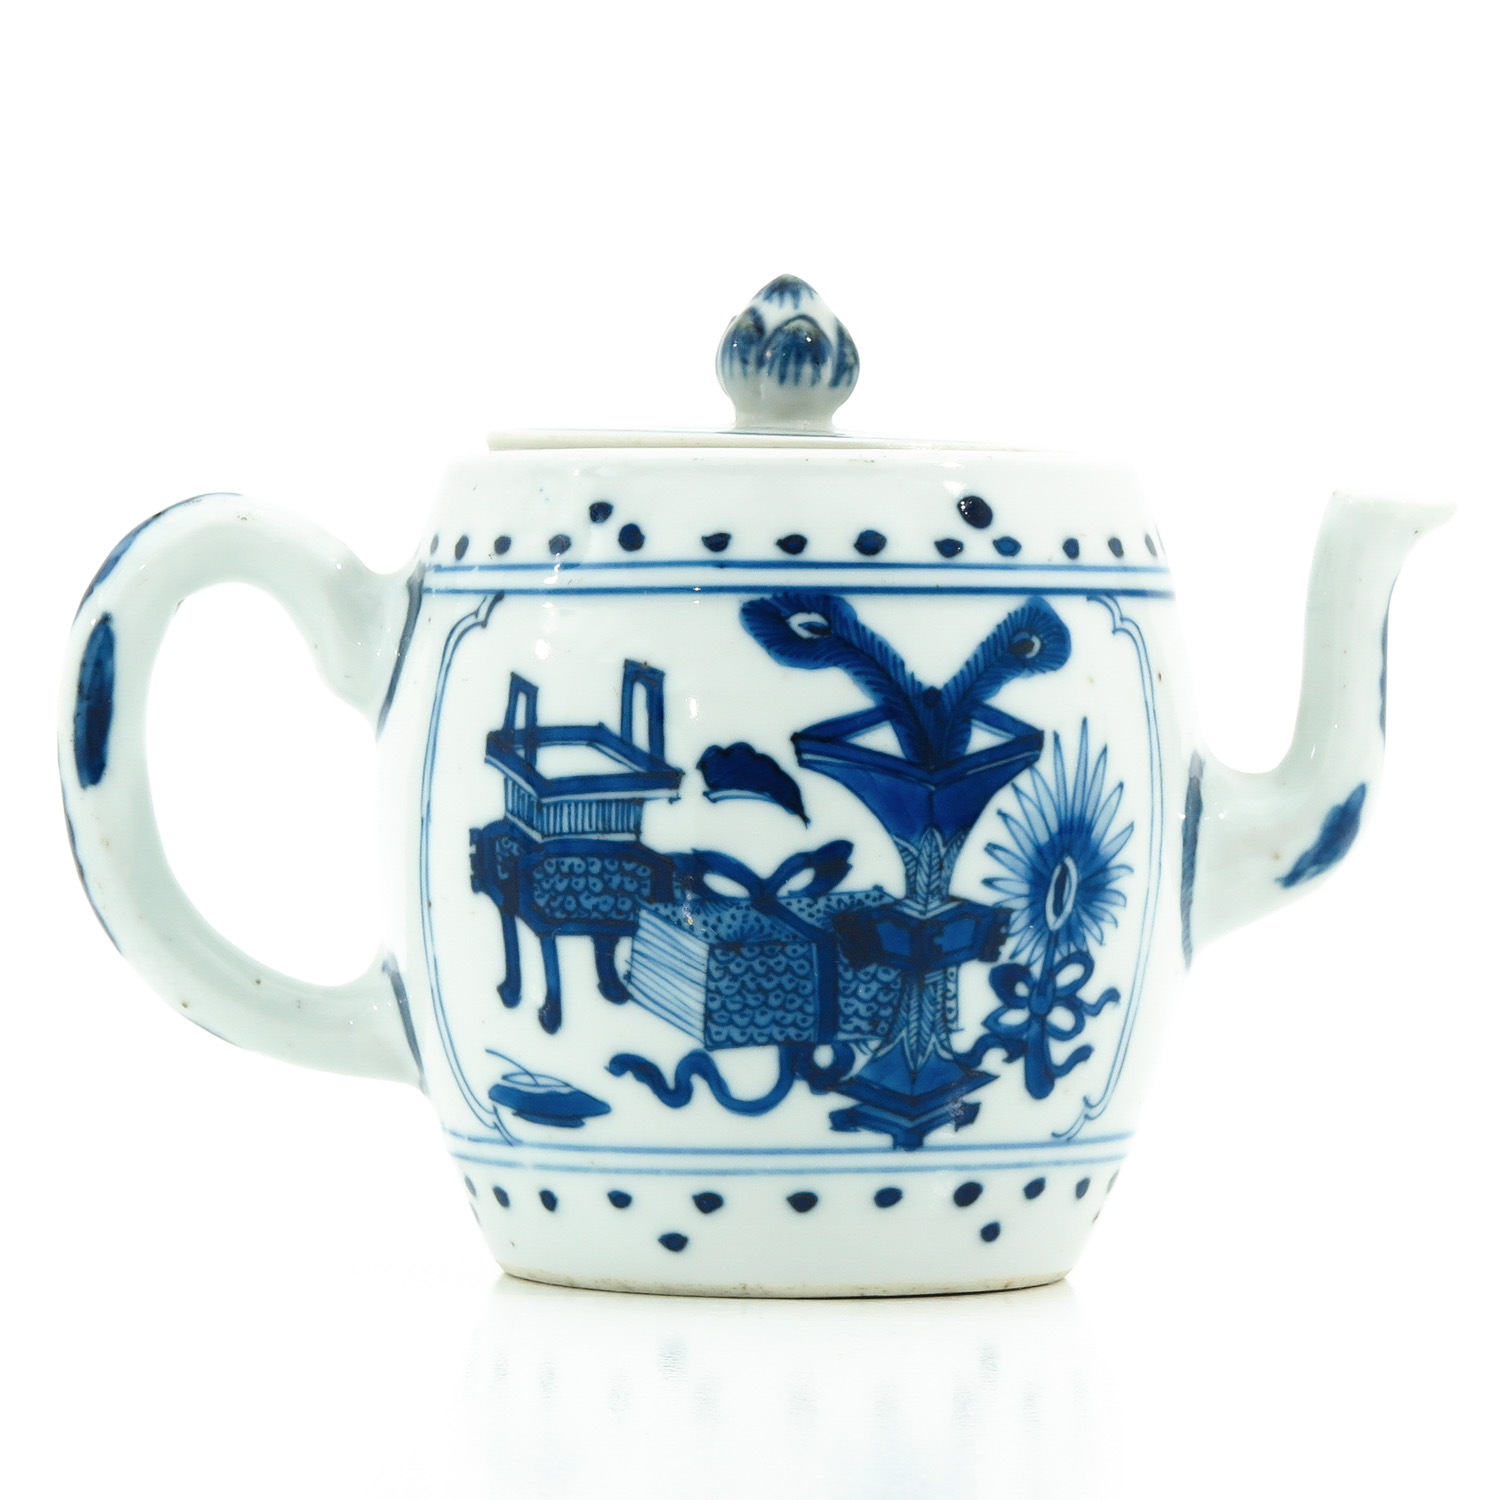 A Blue and White Teapot - Image 3 of 10